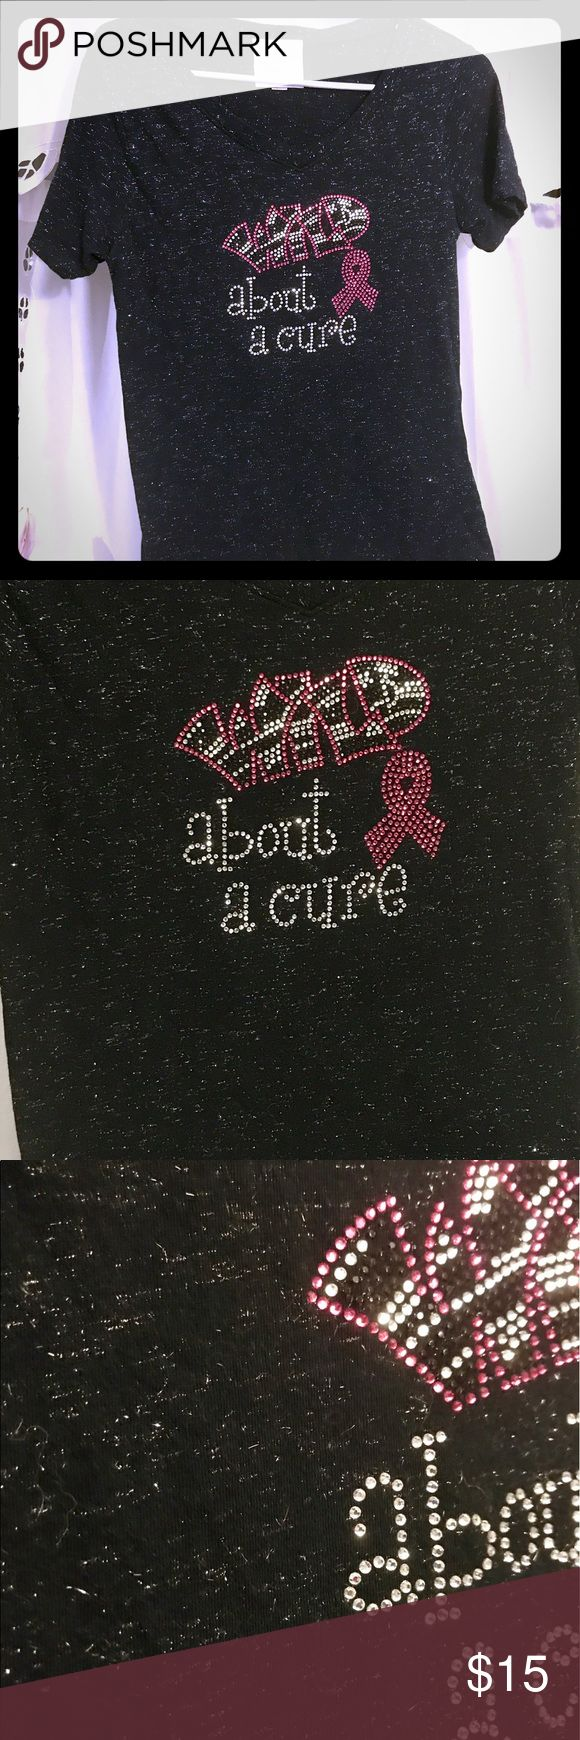 "Studded breast cancer awareness v-neck tee NWOT blinged out / bedazzled breast cancer awareness v neck women's fit medium tee, reads ""Wild about a cure"" and has silver threads in the knit! Proceeds from this sale will benefit Sisters Strong, a breast cancer support group of the Twin Cities, that I am so thankful for their support for my mother during her battle when I was thousands of miles away. She is now 4 years cancer free! It's never too soon to get checked! Save the ta tas! Tops Tees…"